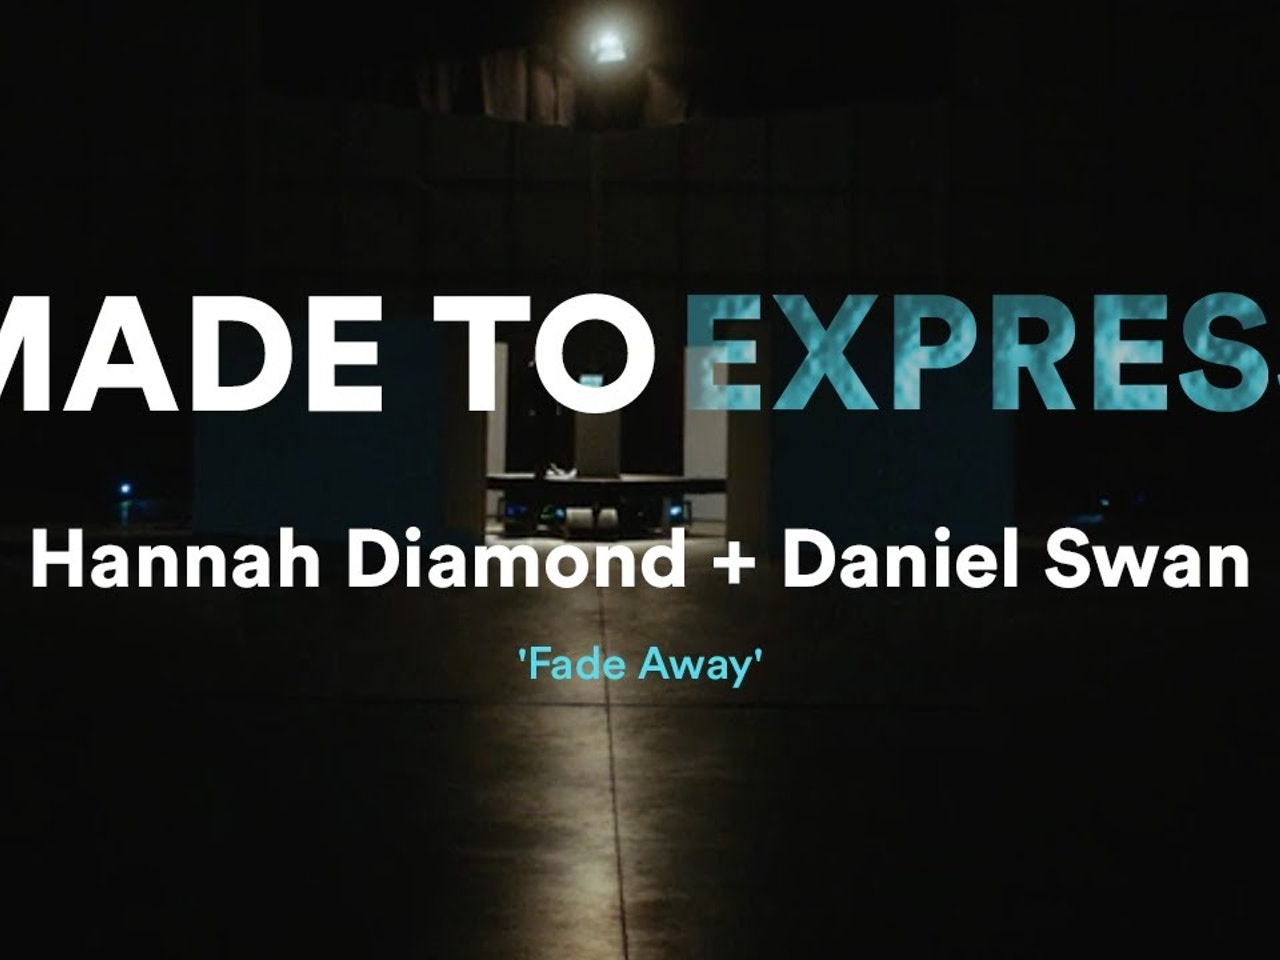 Hannah Diamond + Daniel Swan 'Fade Away' - Made to express // Novation